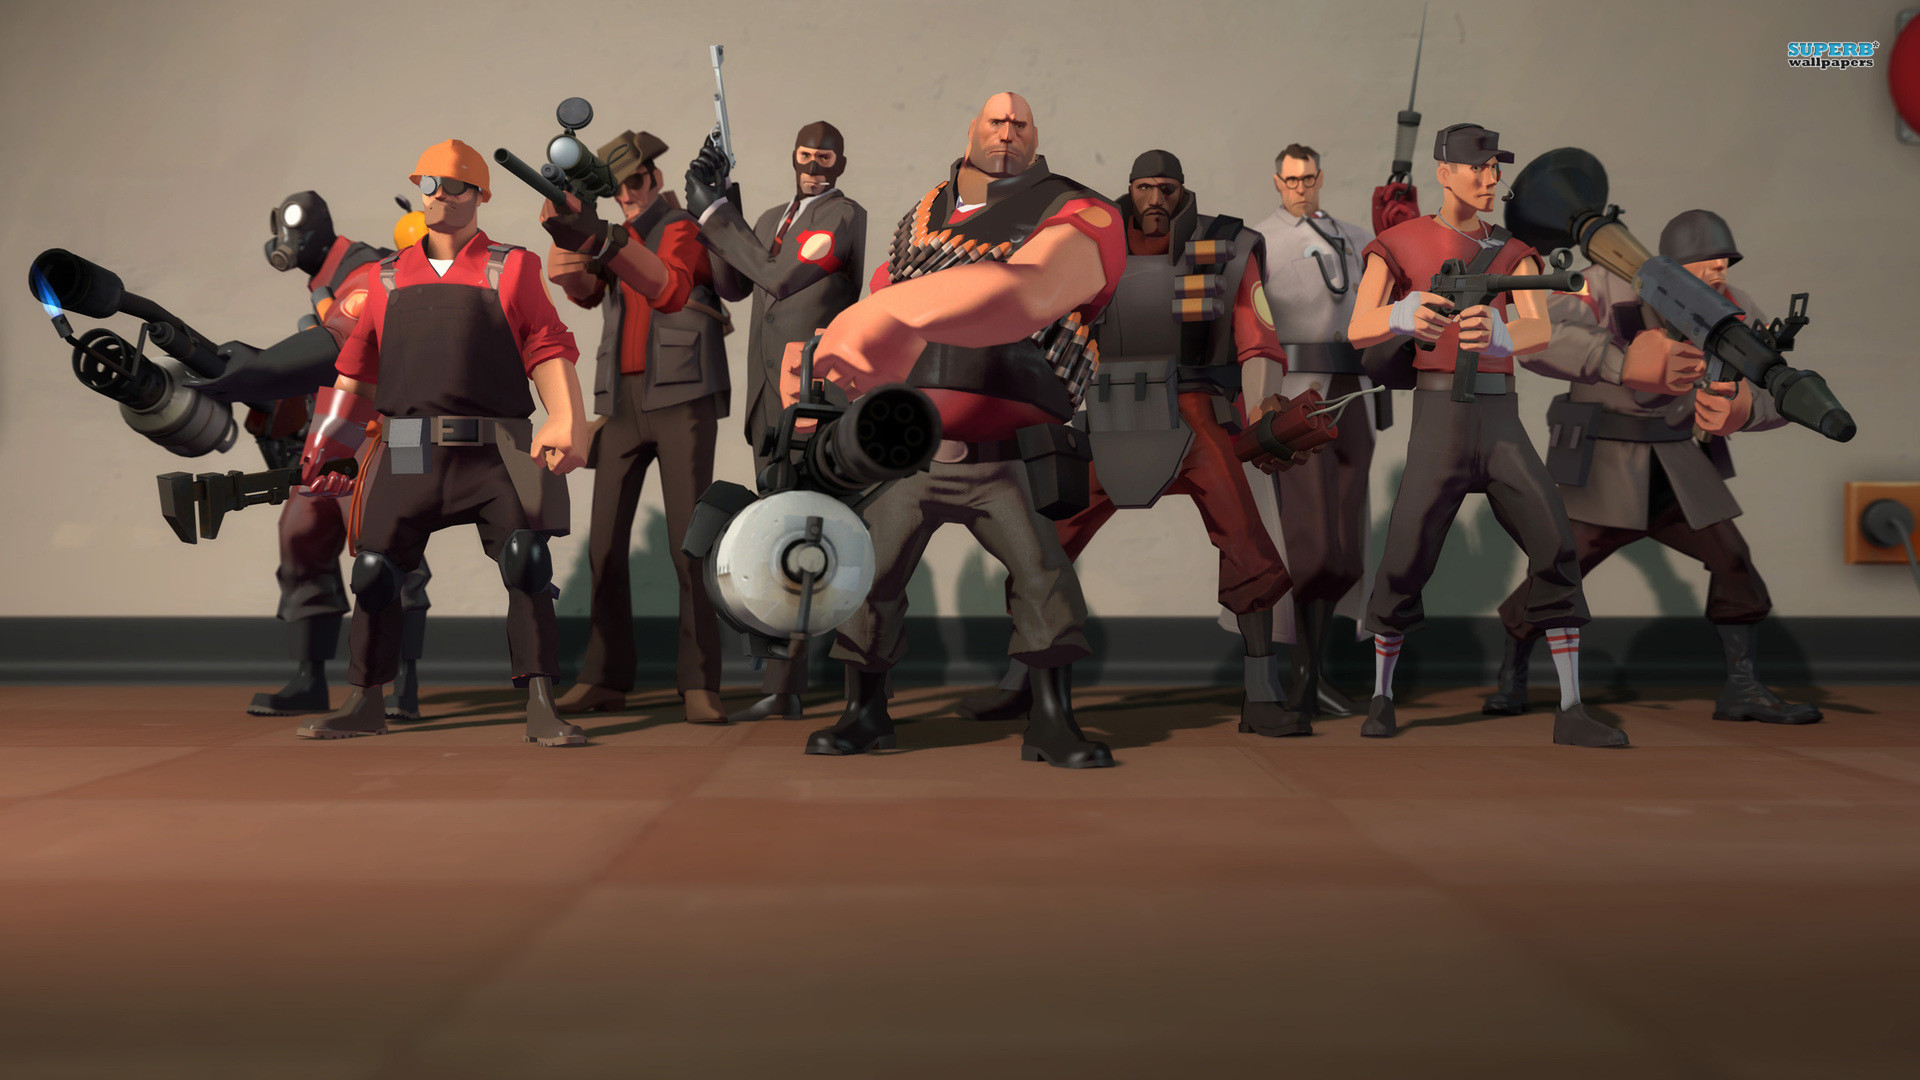 Team Fortress 2 wallpapers (17 Wallpapers)